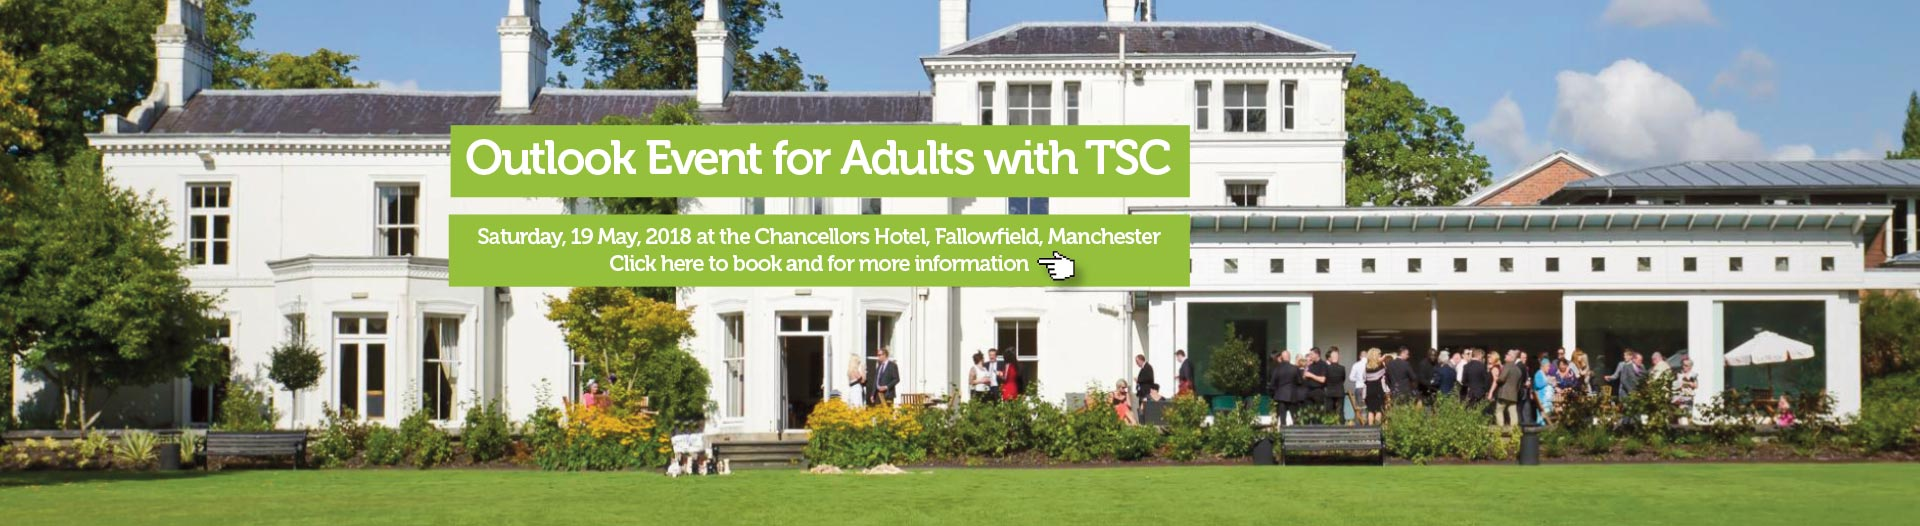 Outlook Event for Adults with TSC Saturday, 19 May, 2018 Chancellors Hotel, Fallowfield, Manchester   Click here to book and for more information http://www.tuberous-sclerosis.org/web-app-events/outlook-group-get-together-saturday-19-may